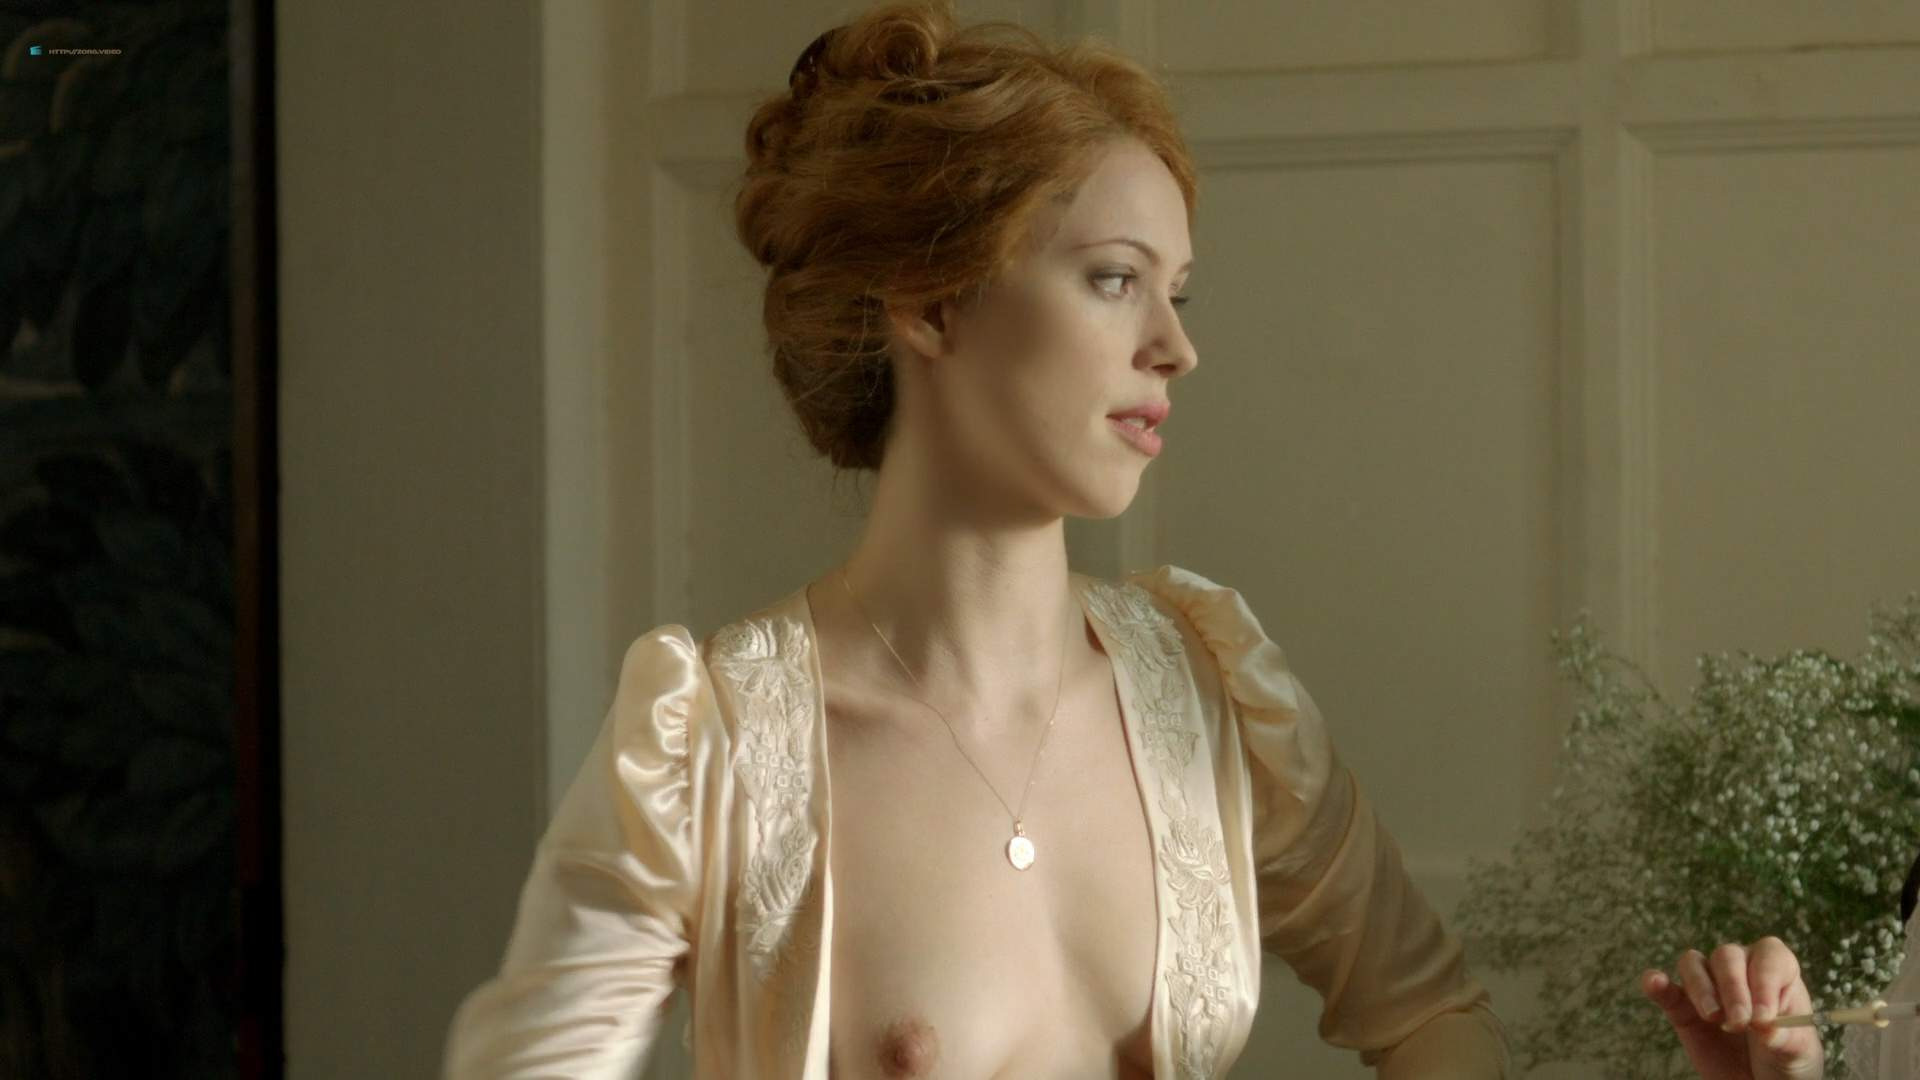 Adiland Porn Pics rebecca hall nude topless and adelaide clemens nude butt